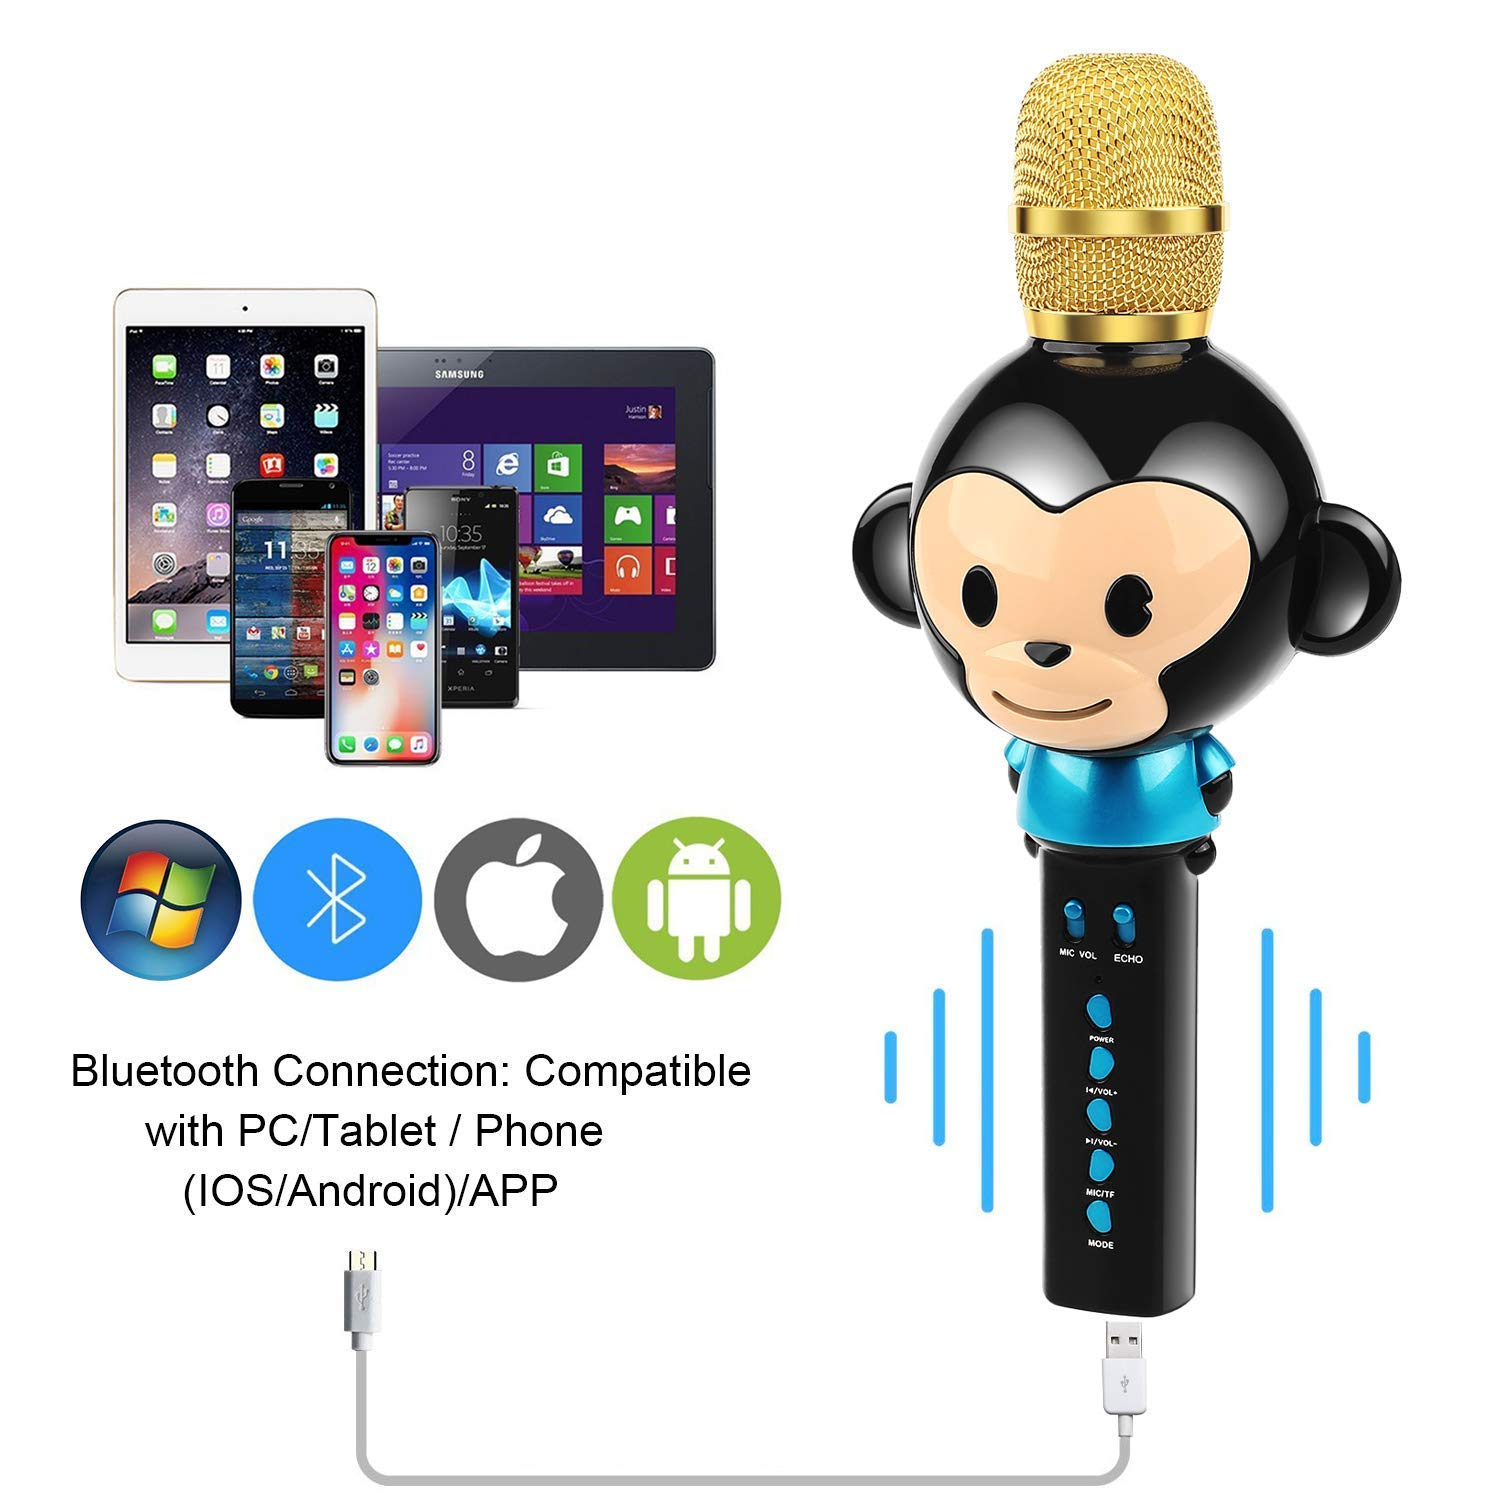 LingHui Kids Microphone Wireless Bluetooth Karaoke Microphone, 3-in-1 Portable Handheld Karaoke Mic Home Party Birthday Speaker Machine for iPhone/Android/iPad/Sony,PC and All Smartphone (Black) by LingHui (Image #4)